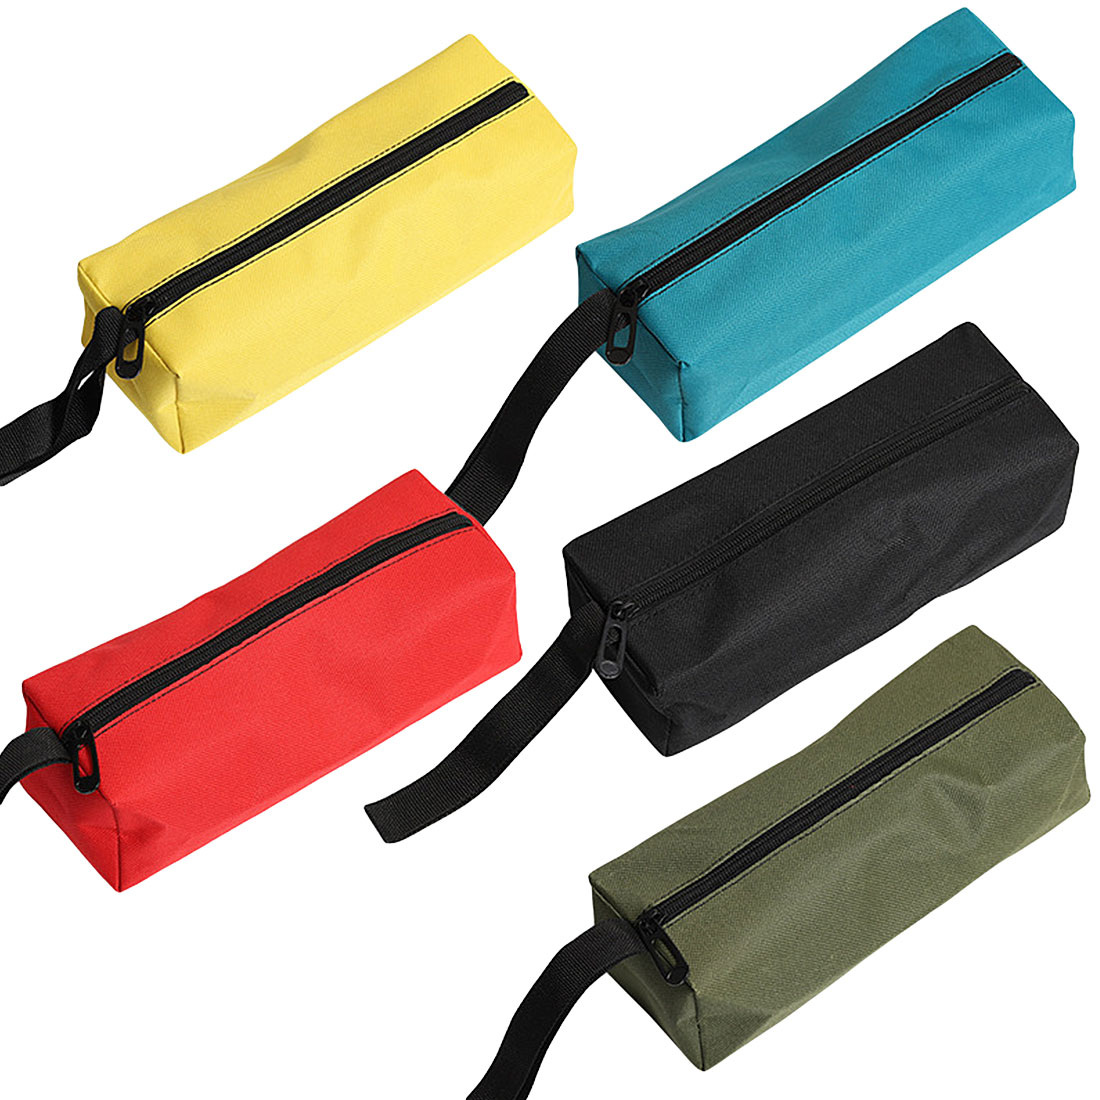 Electric Instrument Bag Hand Tool Case Waterproof Canvas Bags Multi-function Screw Nail Drill Bit Small Tools Storage